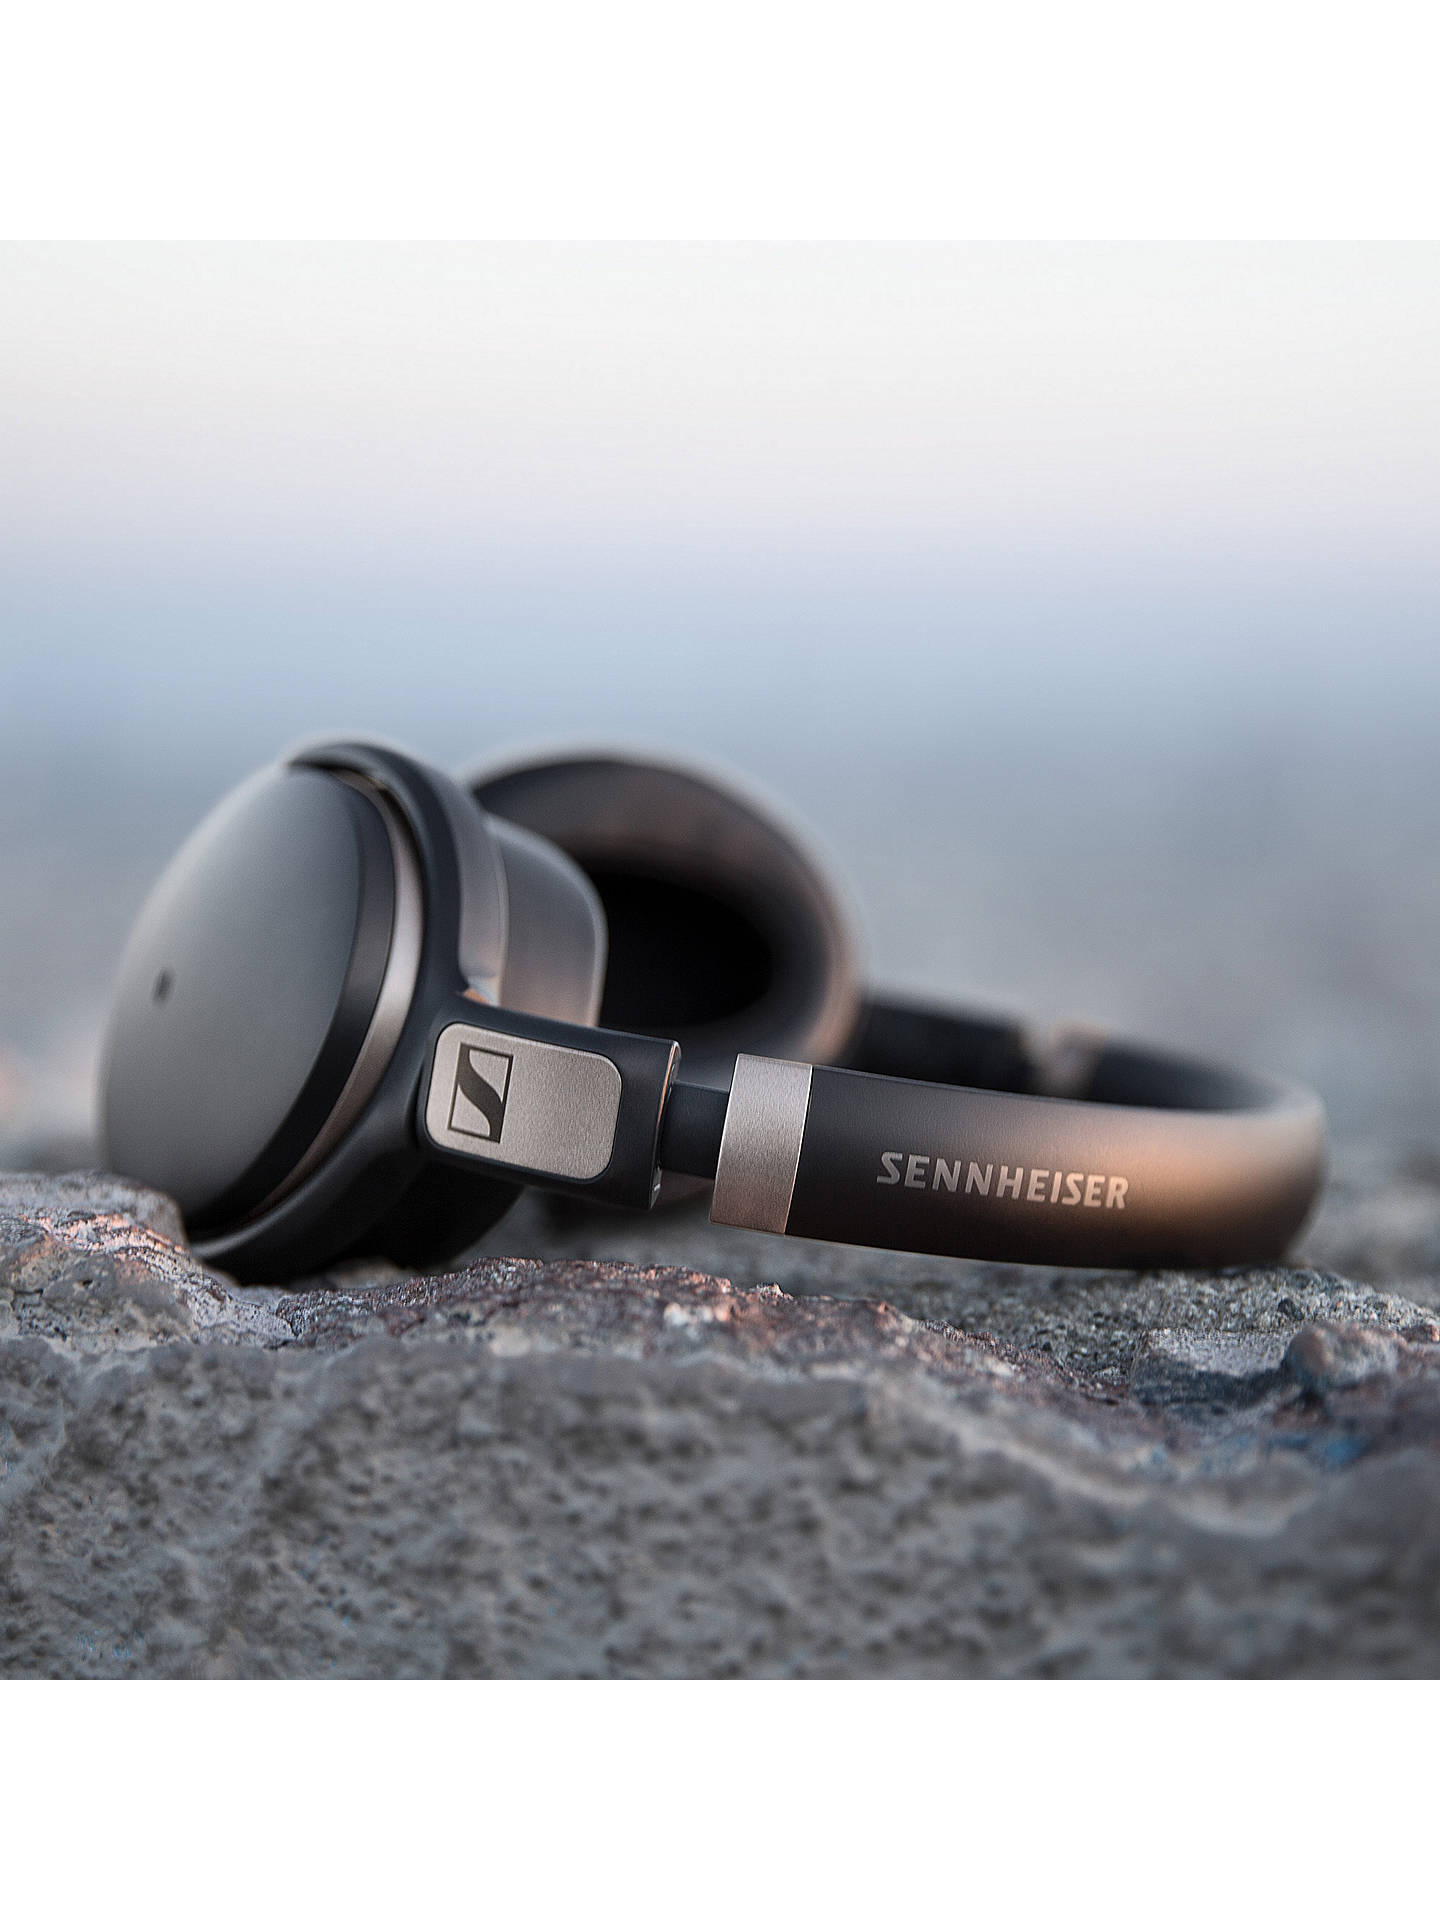 Buy Sennheiser HD 4.50BTNC Noise Cancelling Bluetooth/NFC Wireless Over-Ear Headphones with Inline Microphone & Remote, Black & Silver Online at johnlewis.com